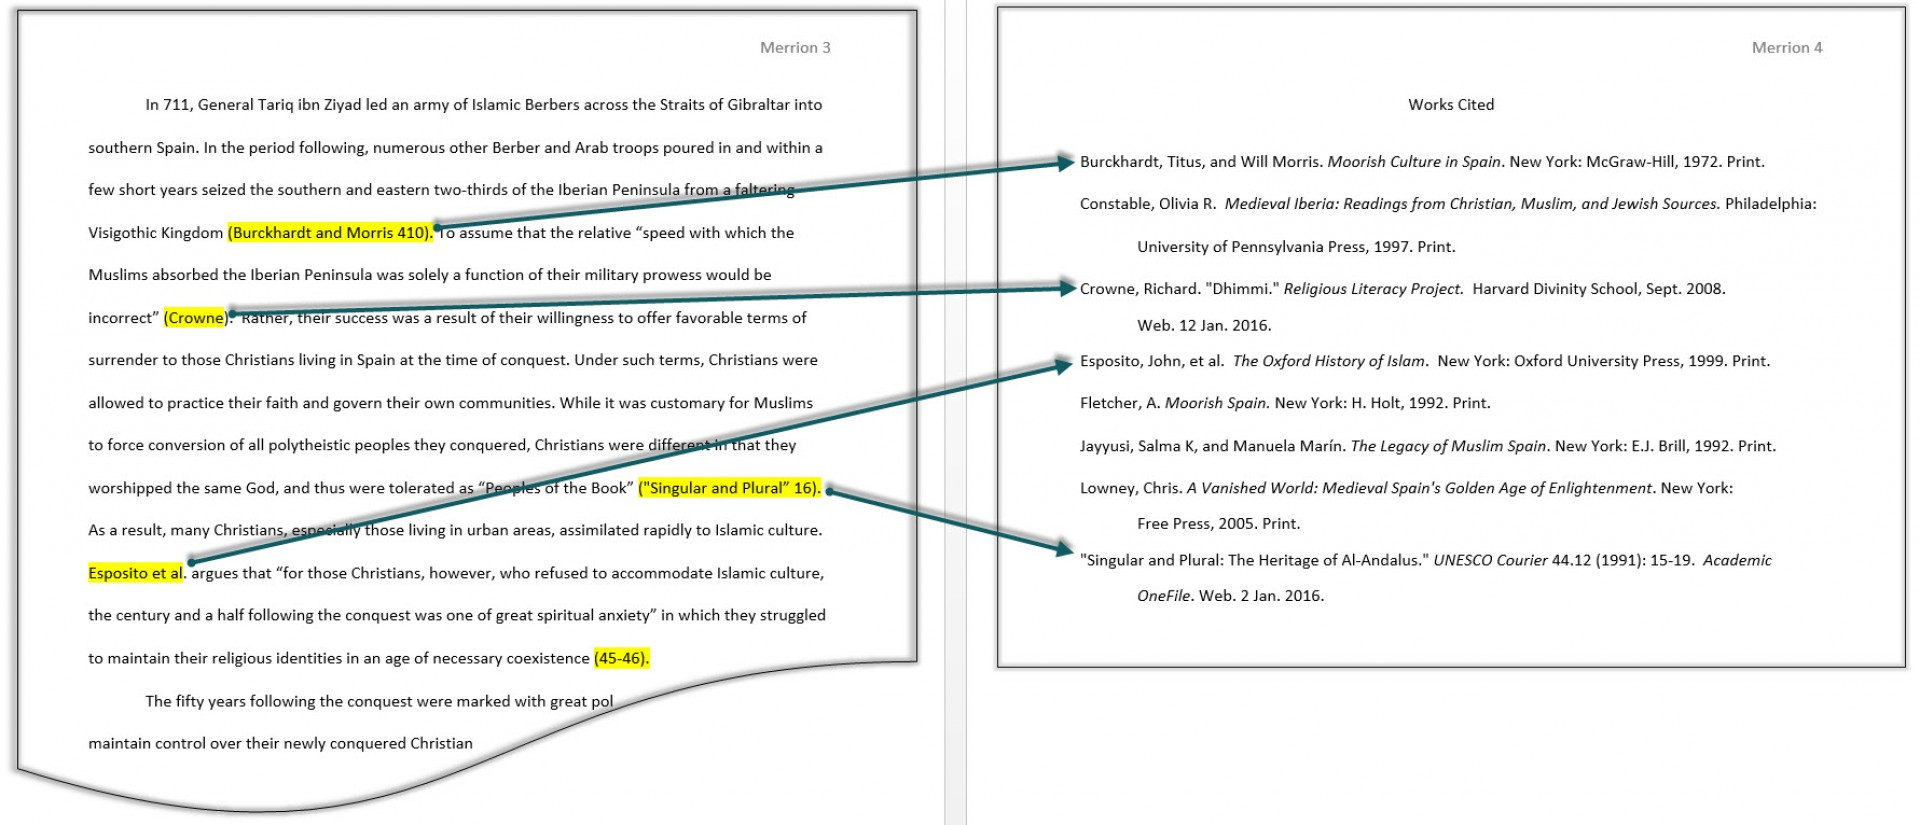 016 Research Paper Mla Sample Citations In Awesome A Citing Sources Citation Example 1920